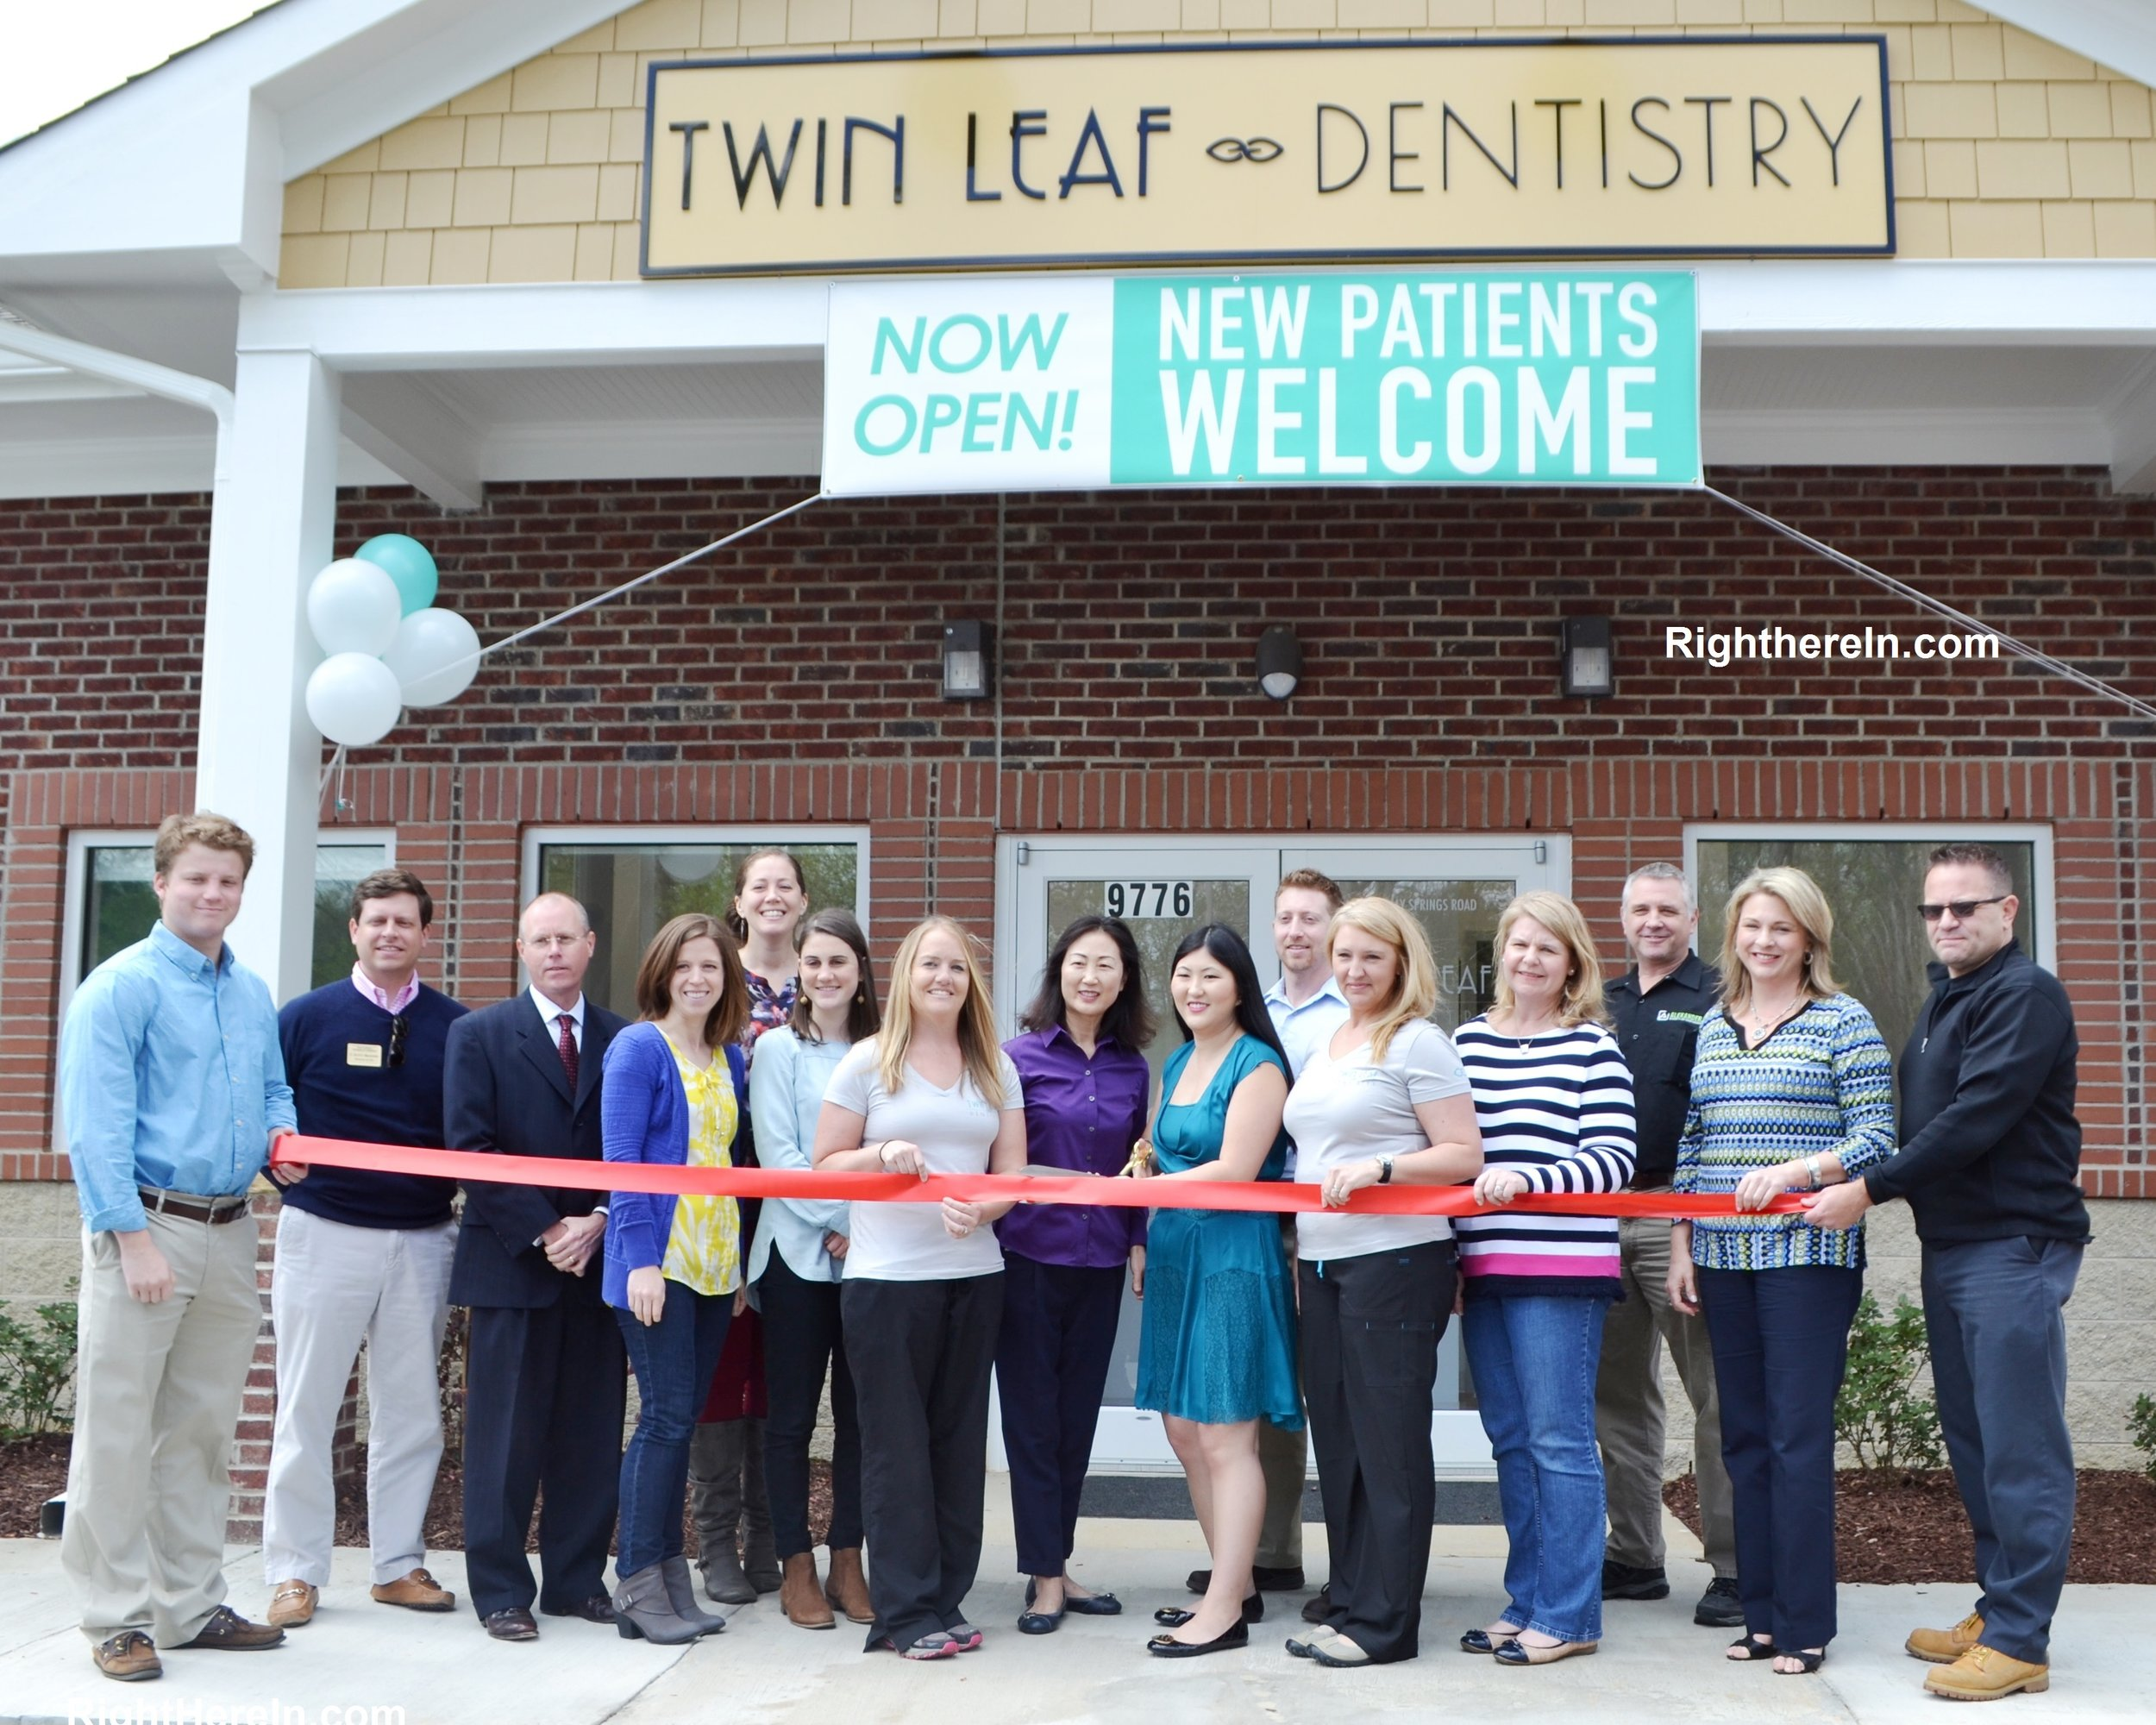 Grand opening! - We had our grand opening in February; members of the Holly Springs Chamber of Commerce came to welcome the town's newest dental office and watch us cut our ribbon. You can check out the story by clicking below!